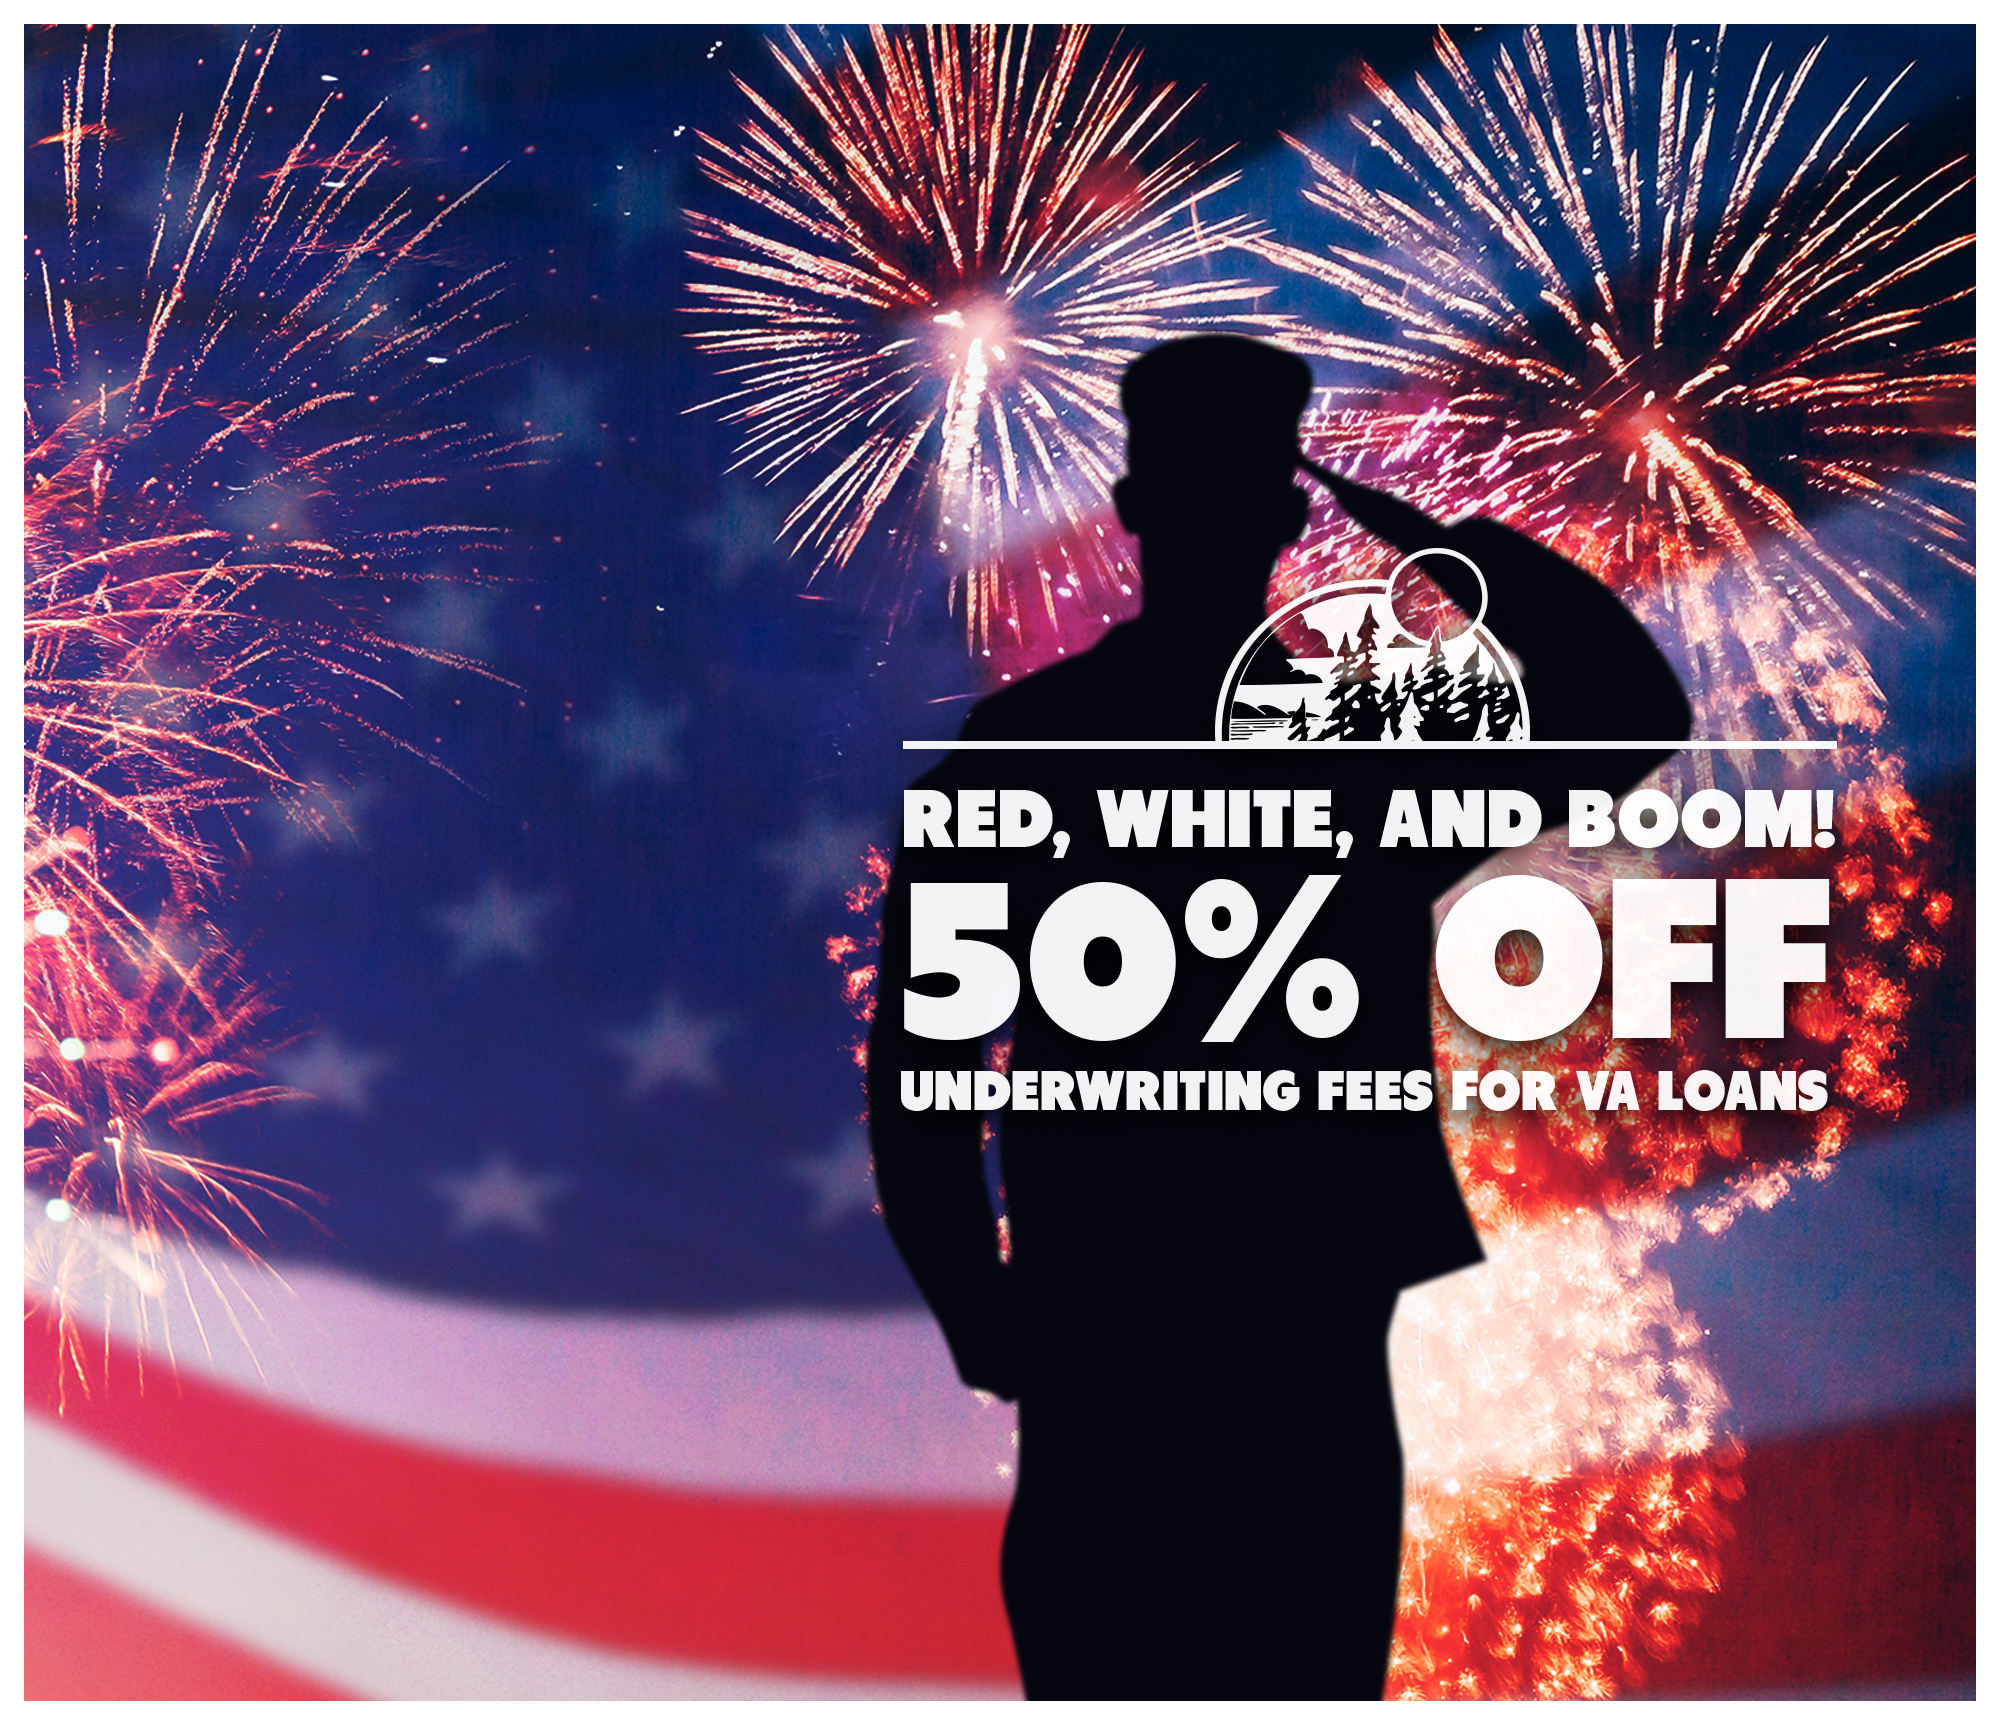 Independence Day Special On VA Loans